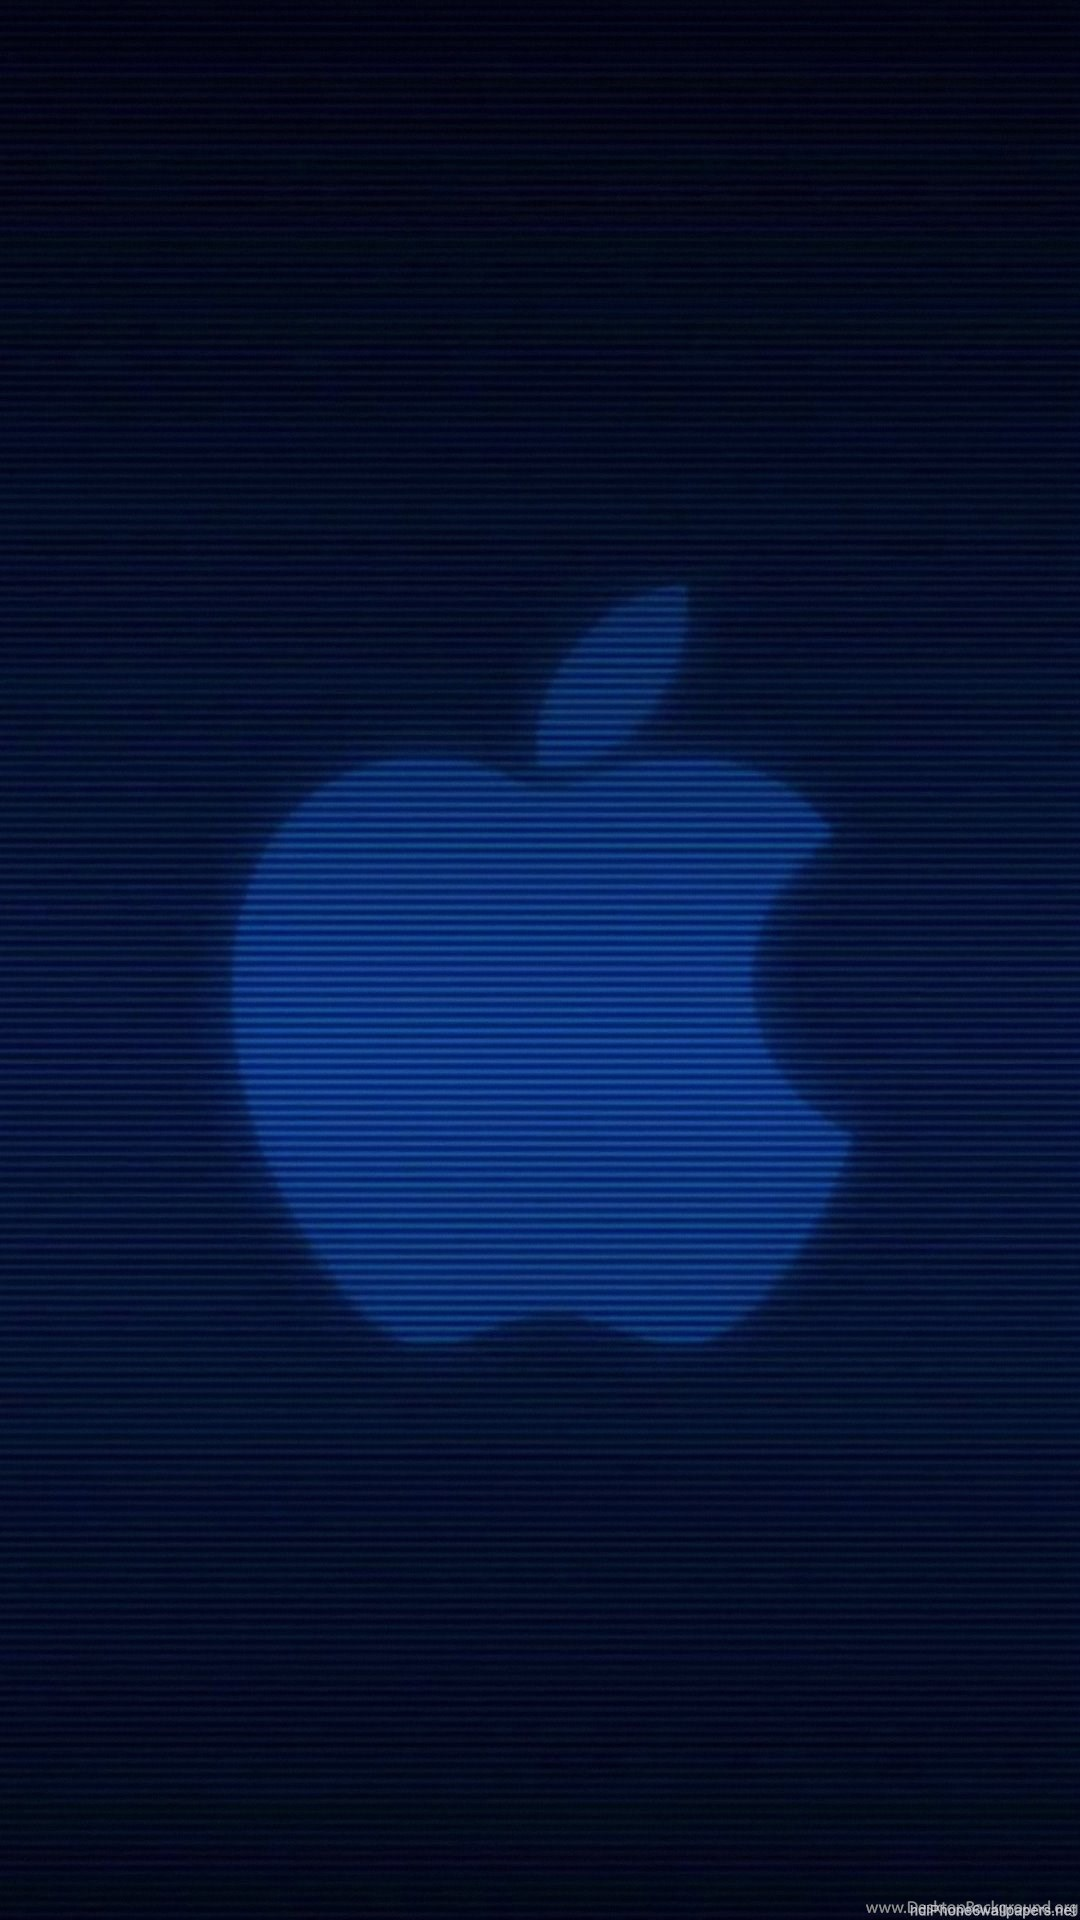 Apple Logo Iphone 6 Wallpapers Hd And 1080p 6 Plus Wallpapers